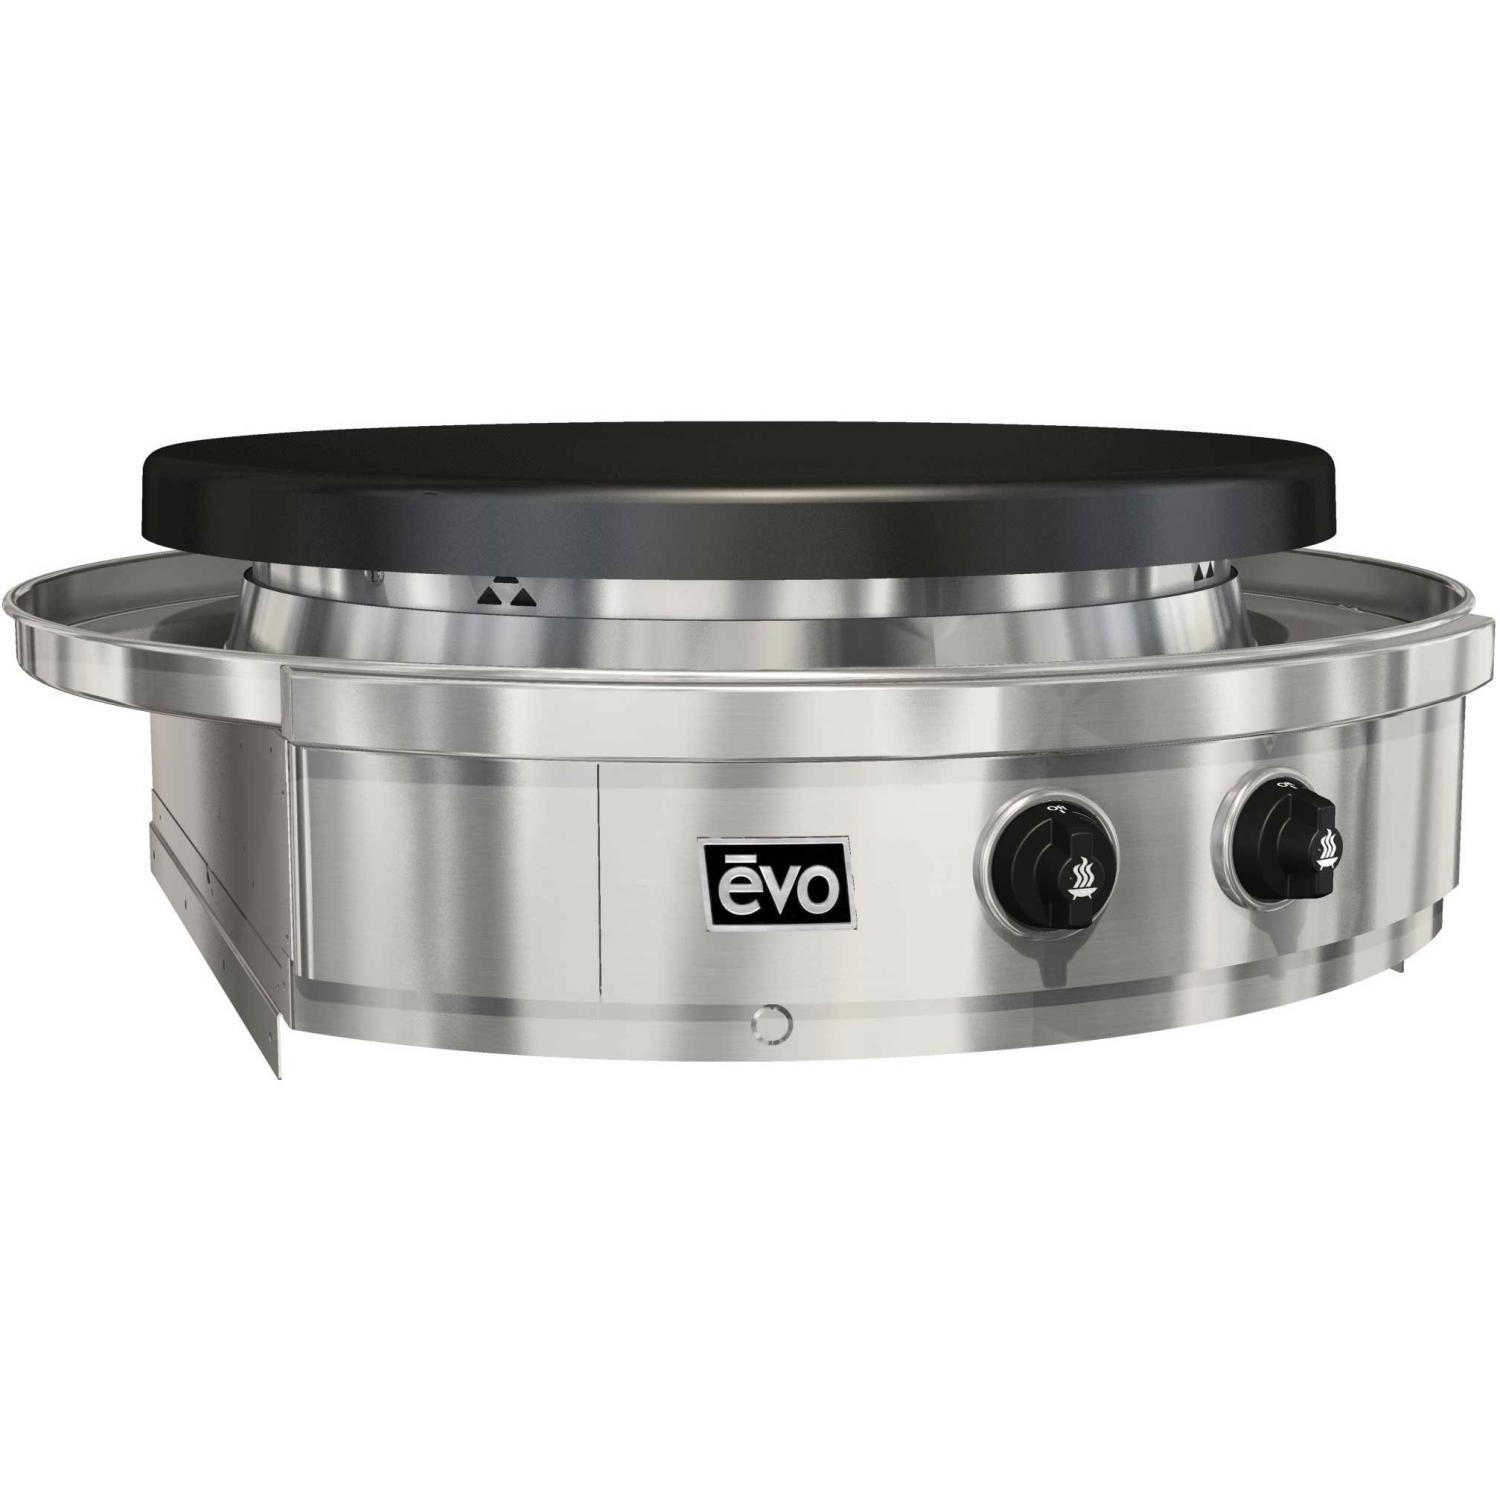 EVO Affinity Classic 30G Built-In Flattop Propane Gas Grill